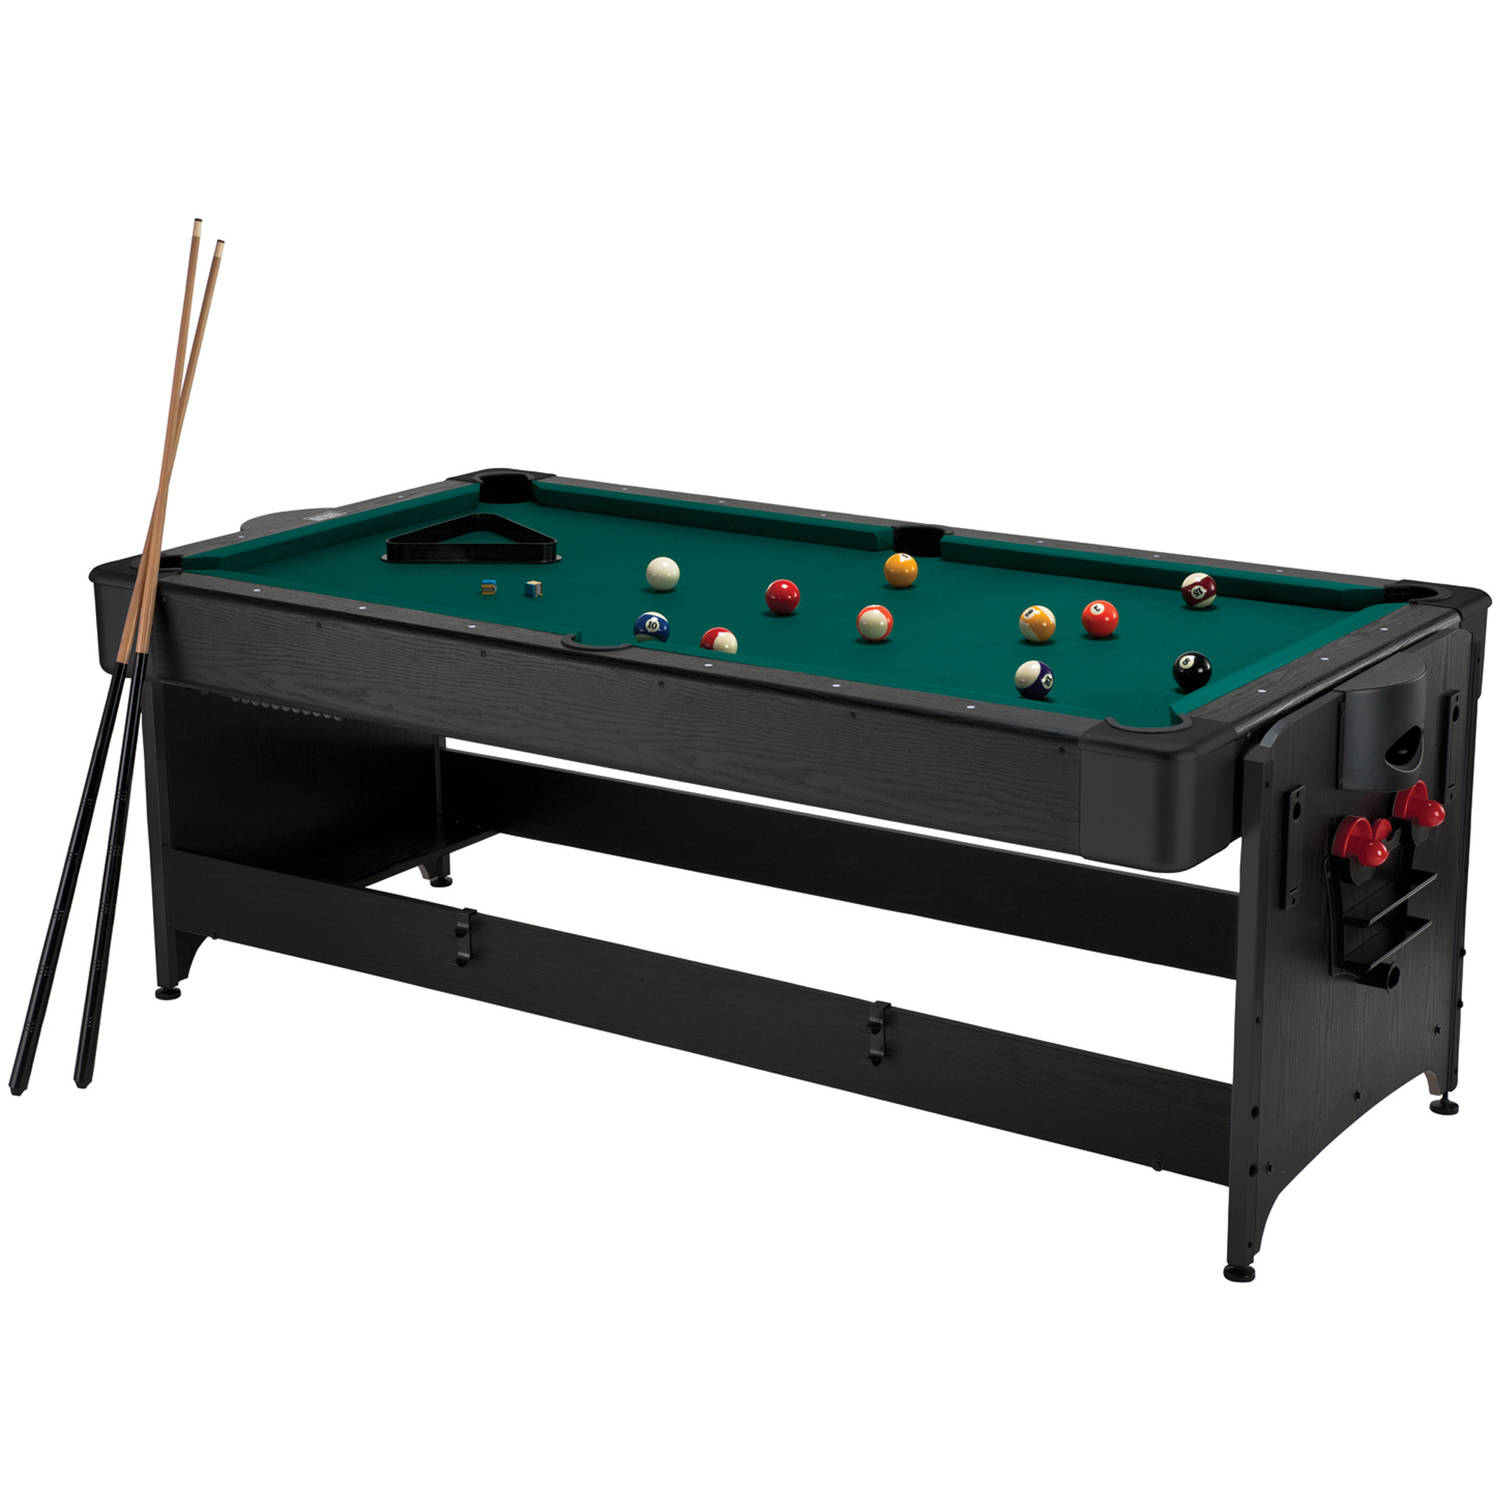 Fat Cat Pockey 7' 2-in-1 Game Table